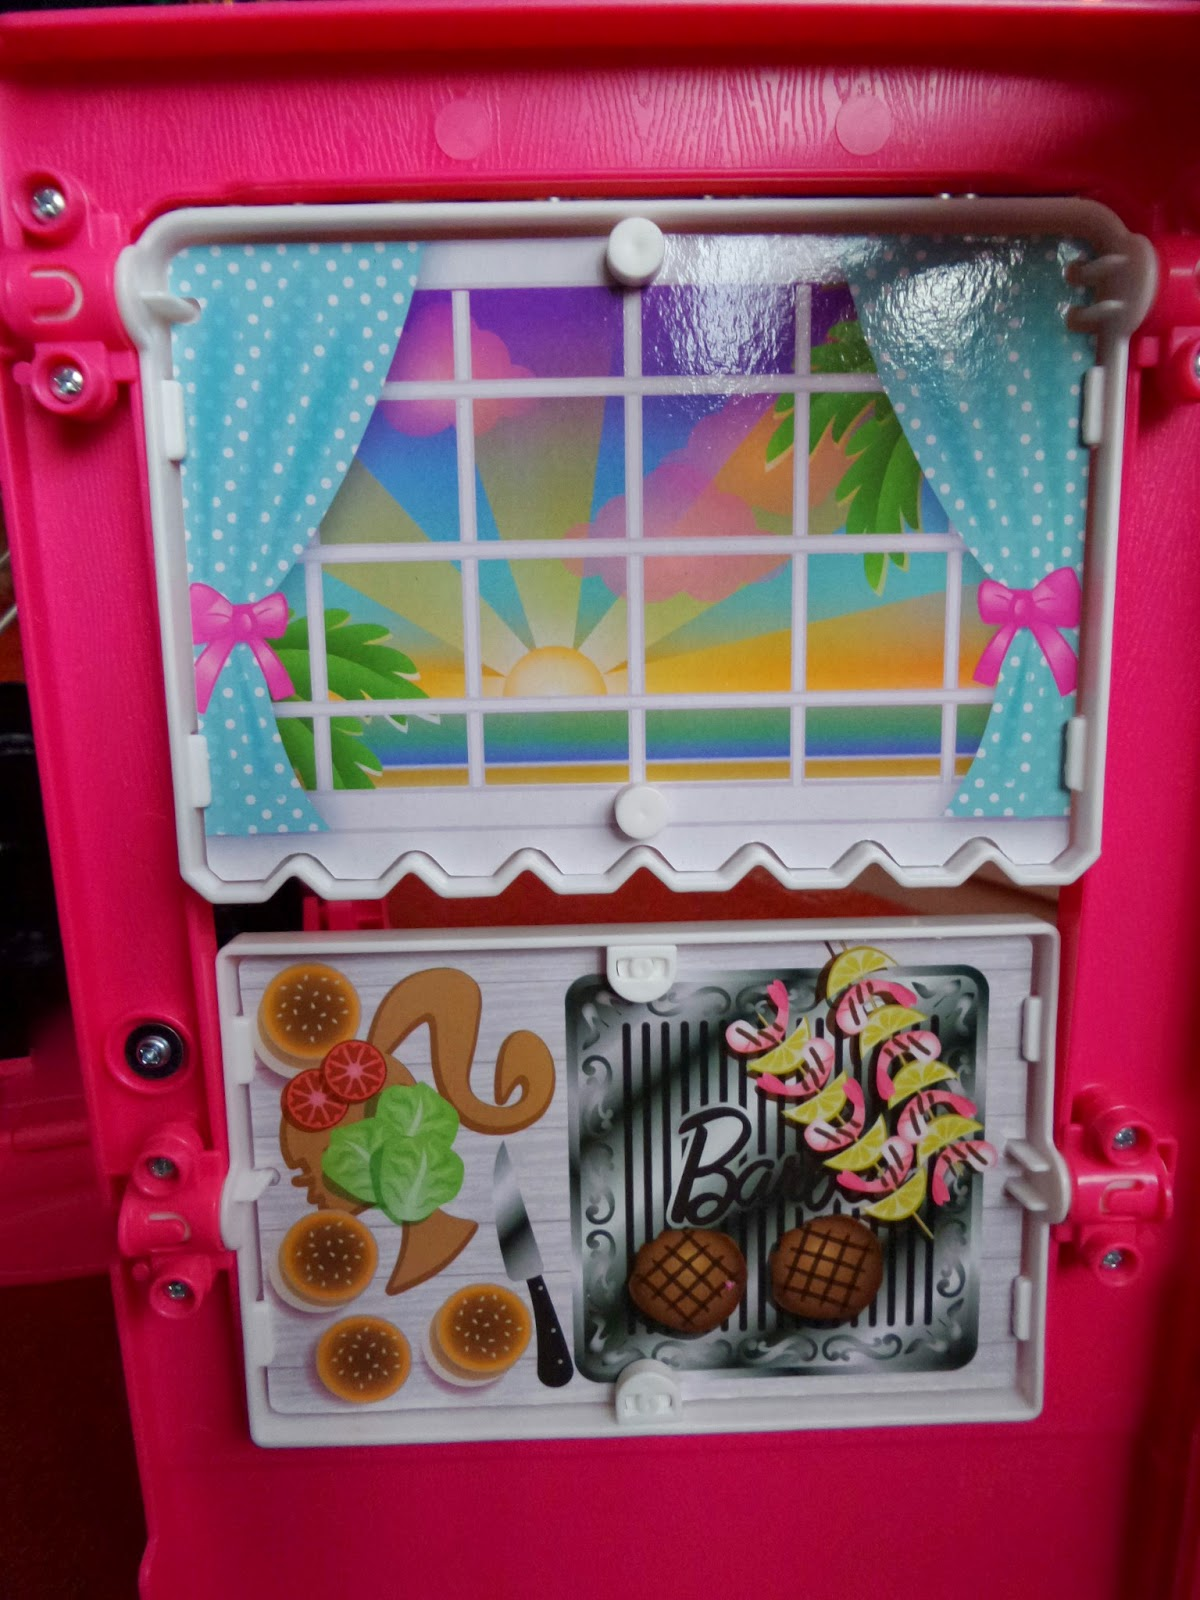 The inside back panel of the Barbie Glam Camper #Review